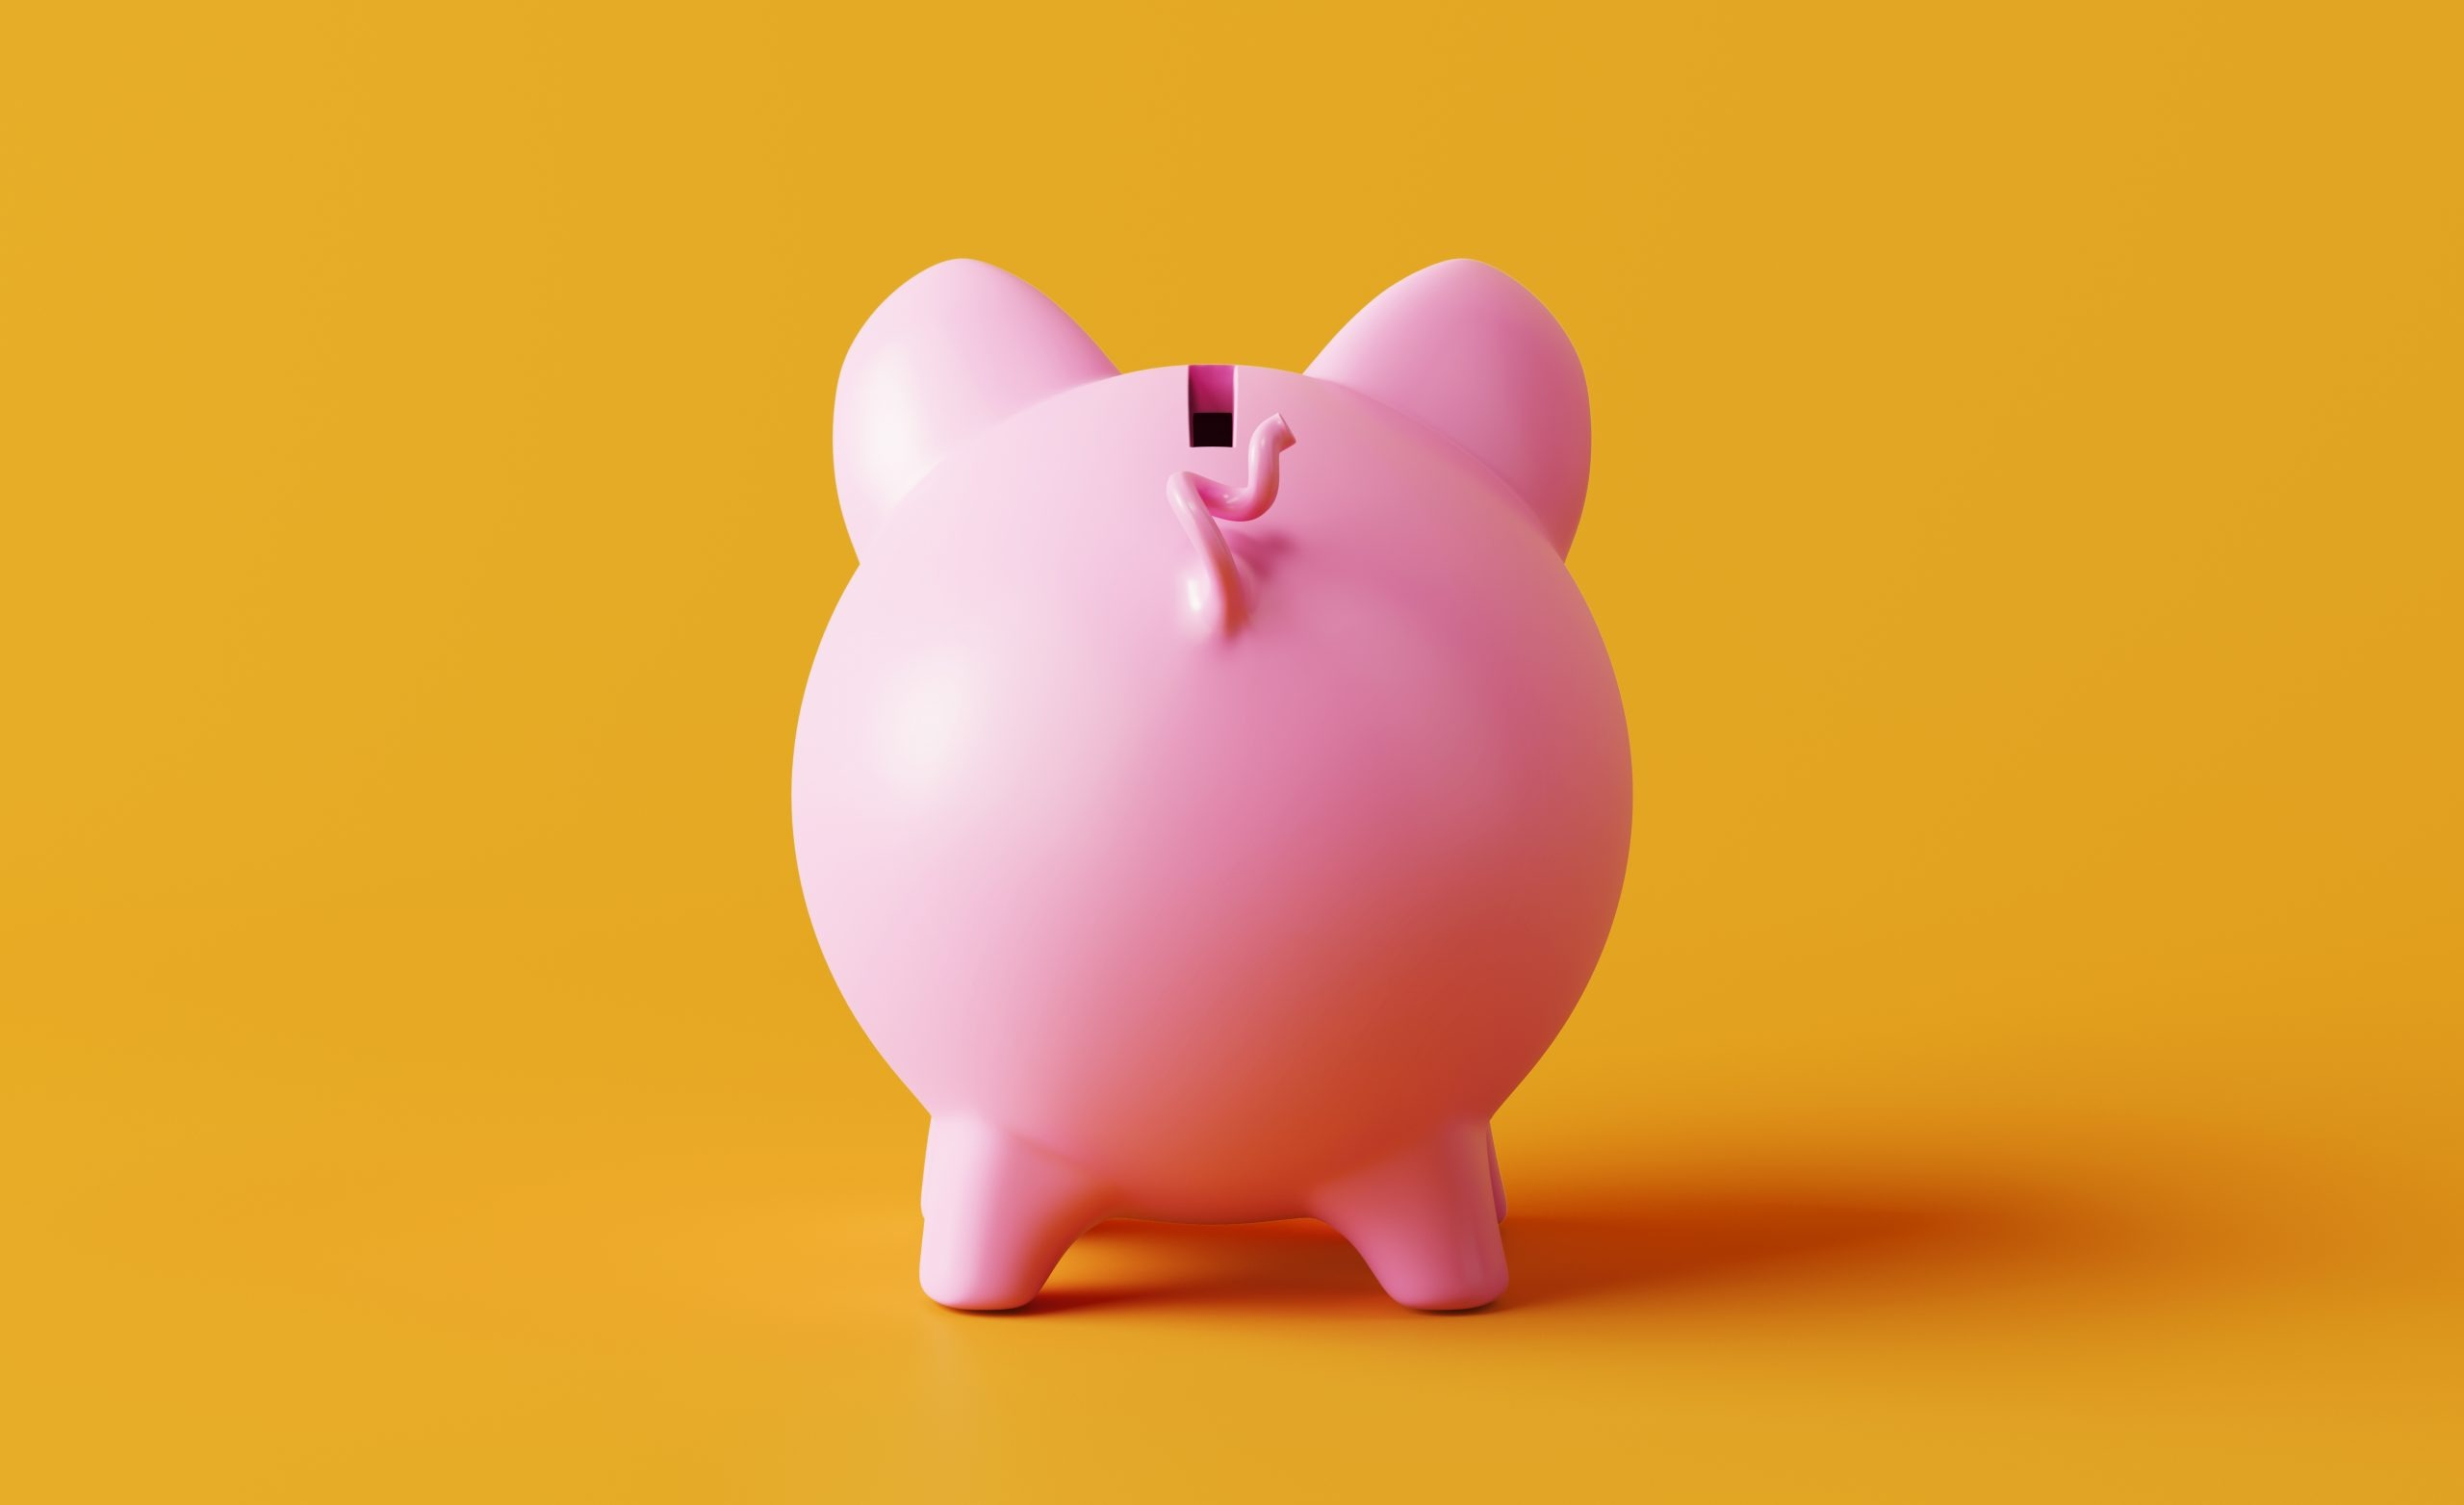 Piggy bank standing on yellow background. Horizontal composition with copy space. Great use for savings concepts.